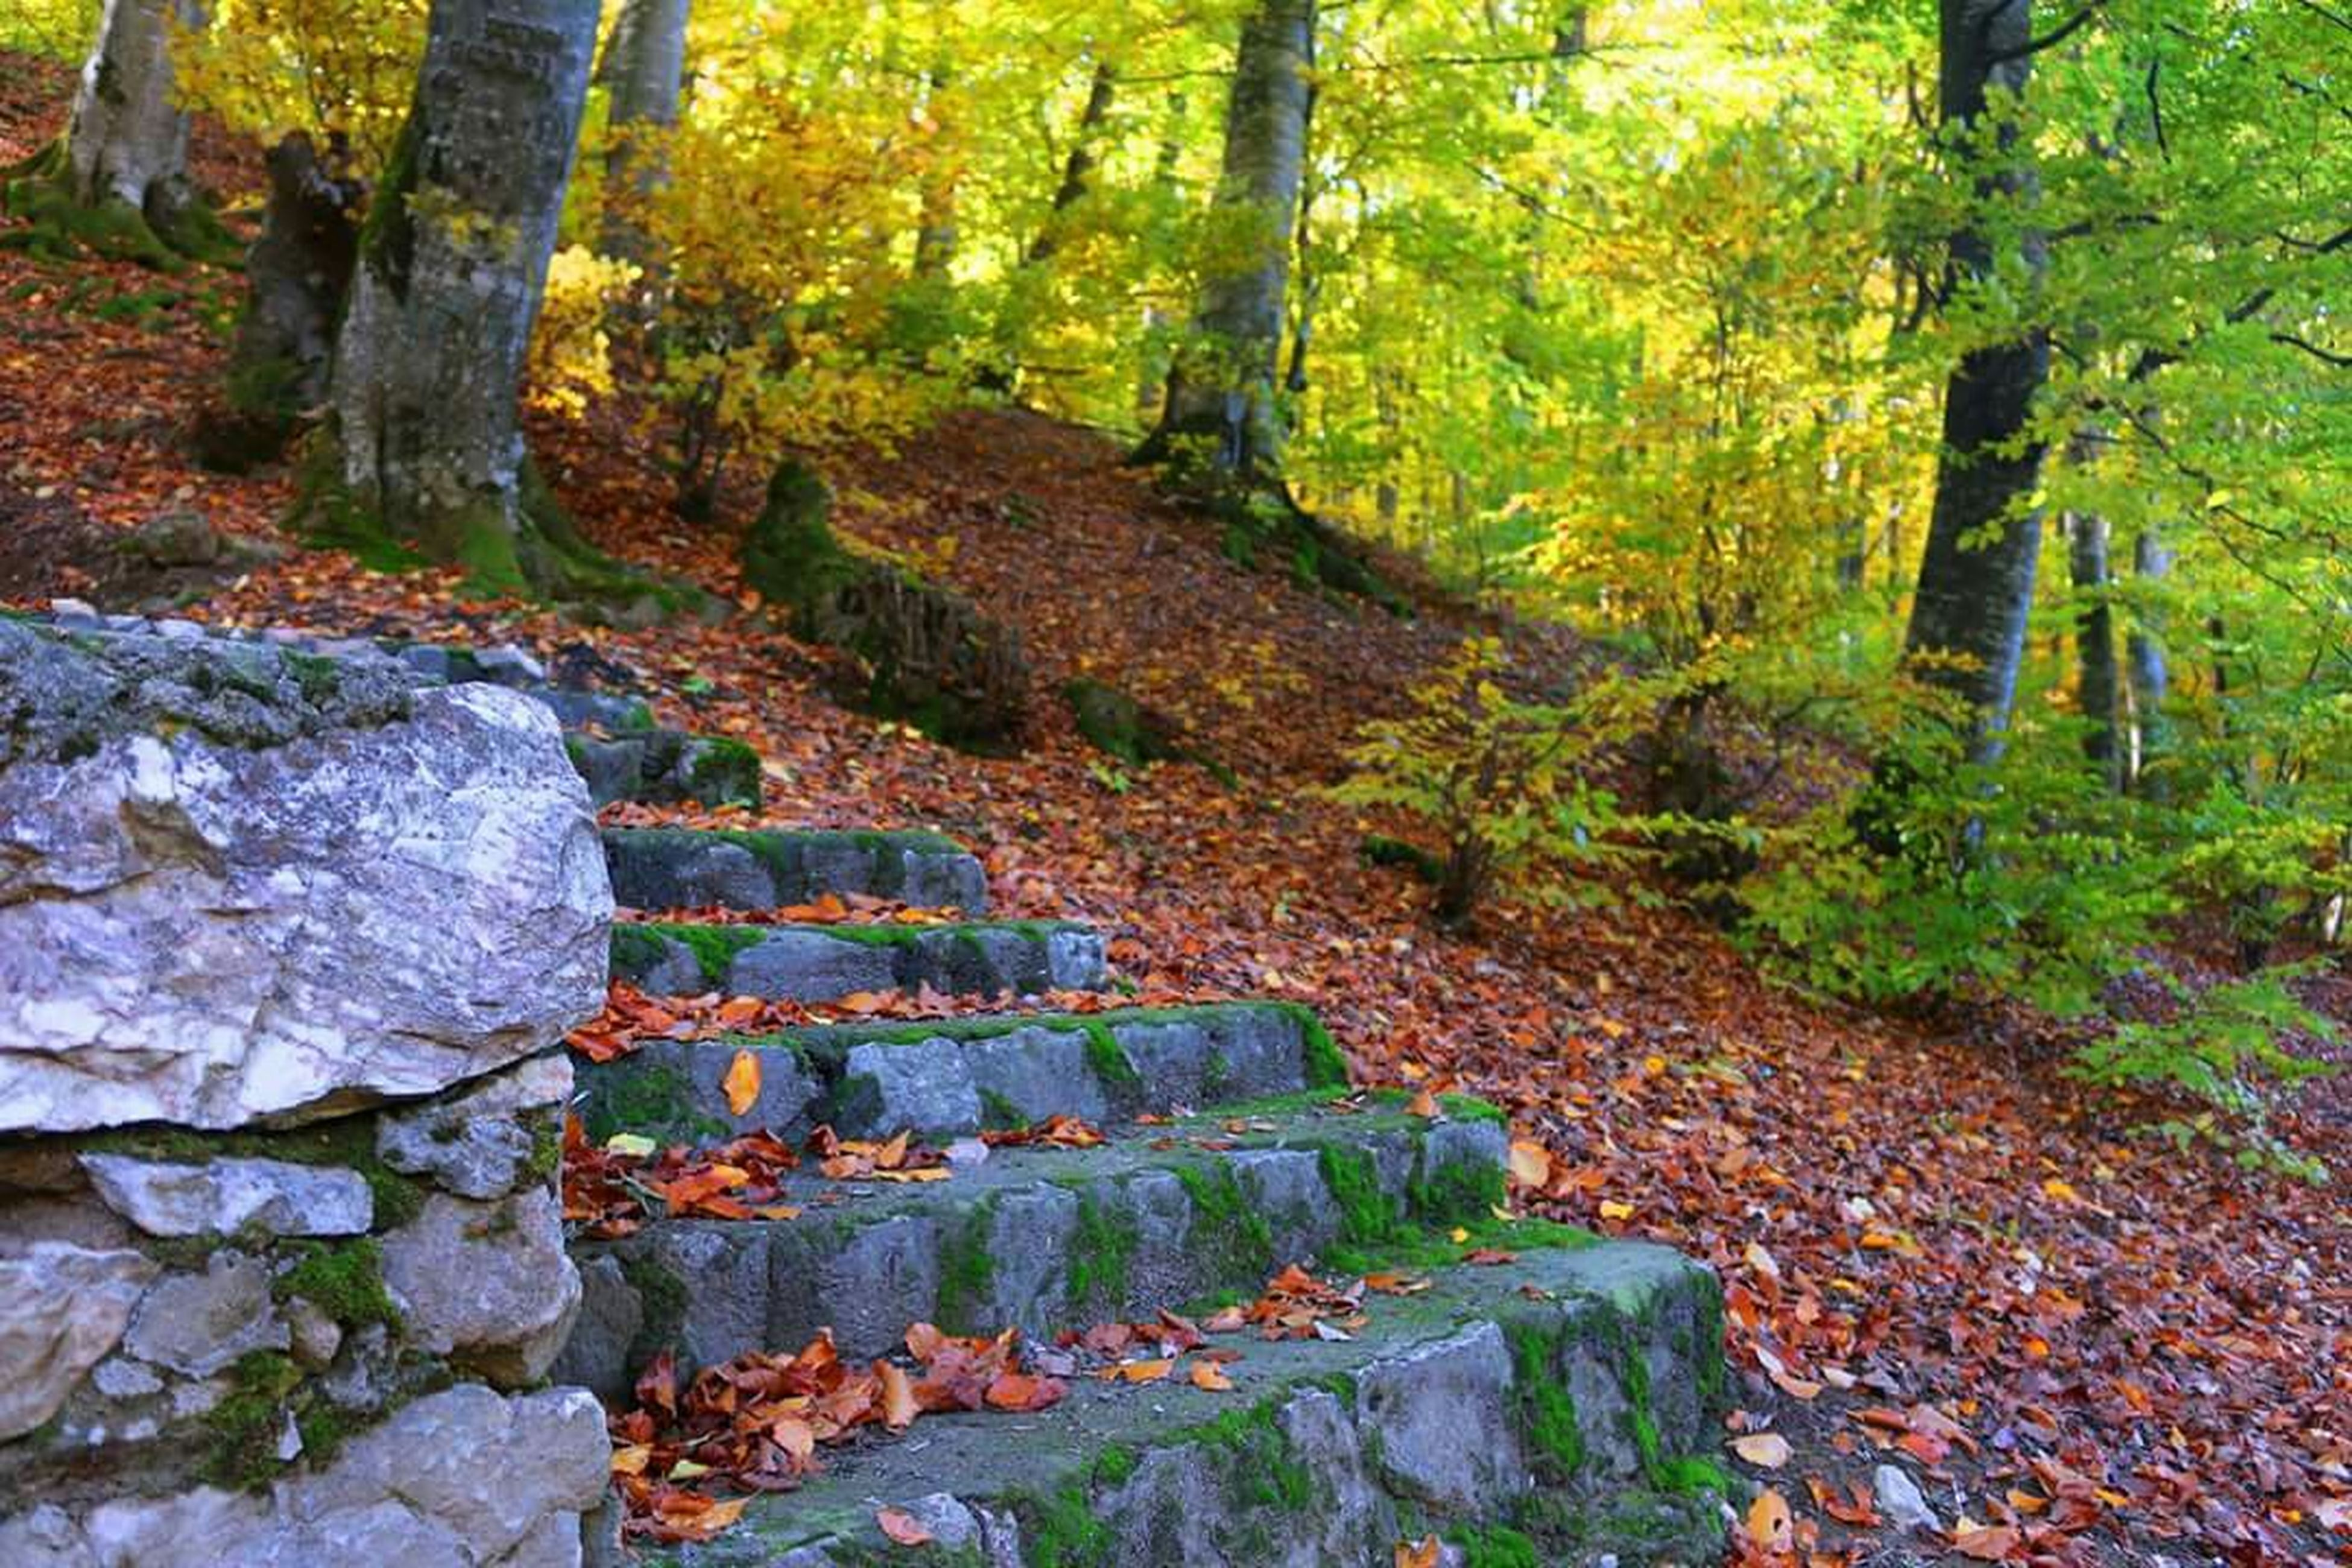 tree, forest, tranquility, nature, growth, tranquil scene, beauty in nature, rock - object, tree trunk, scenics, moss, green color, day, outdoors, leaf, no people, non-urban scene, woodland, plant, autumn